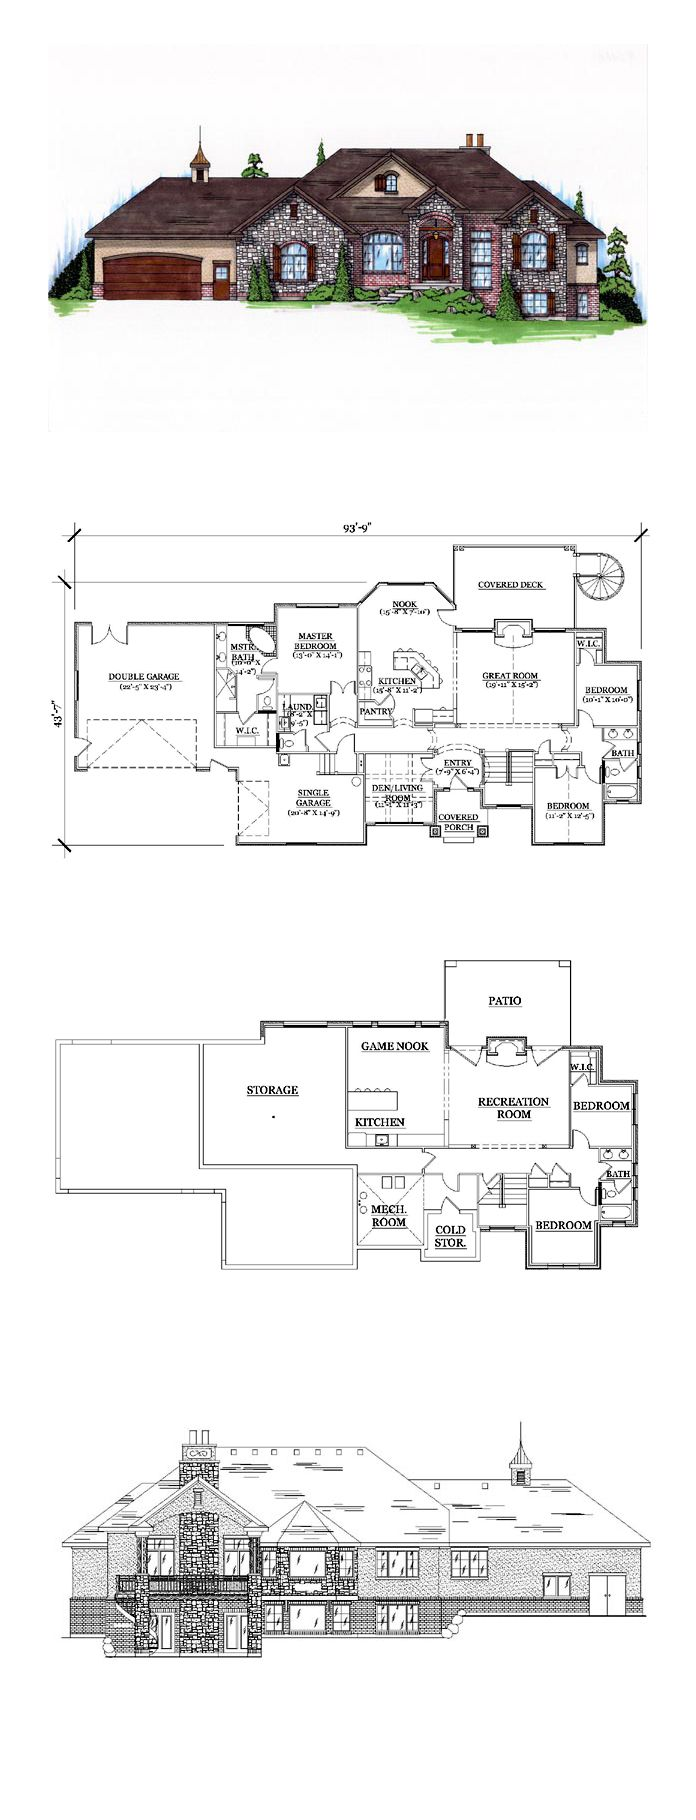 16 best house plans with finished basements images on pinterest cool house plan id chp 44969 total living area 2113 sq